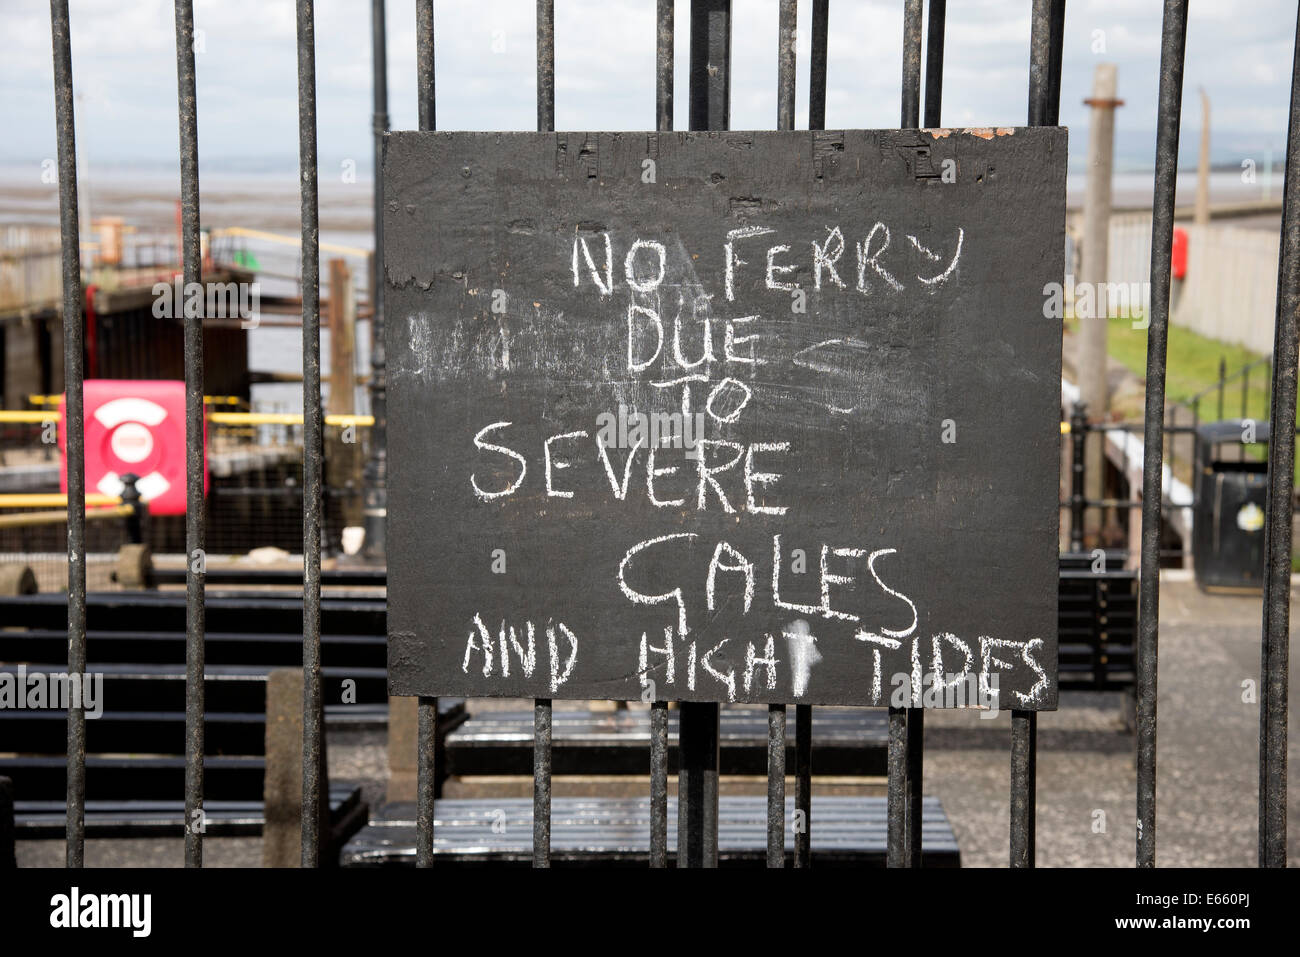 Fleetwood Ferry cancelled notice due to gales and high tides Lancashire England UK - Stock Image